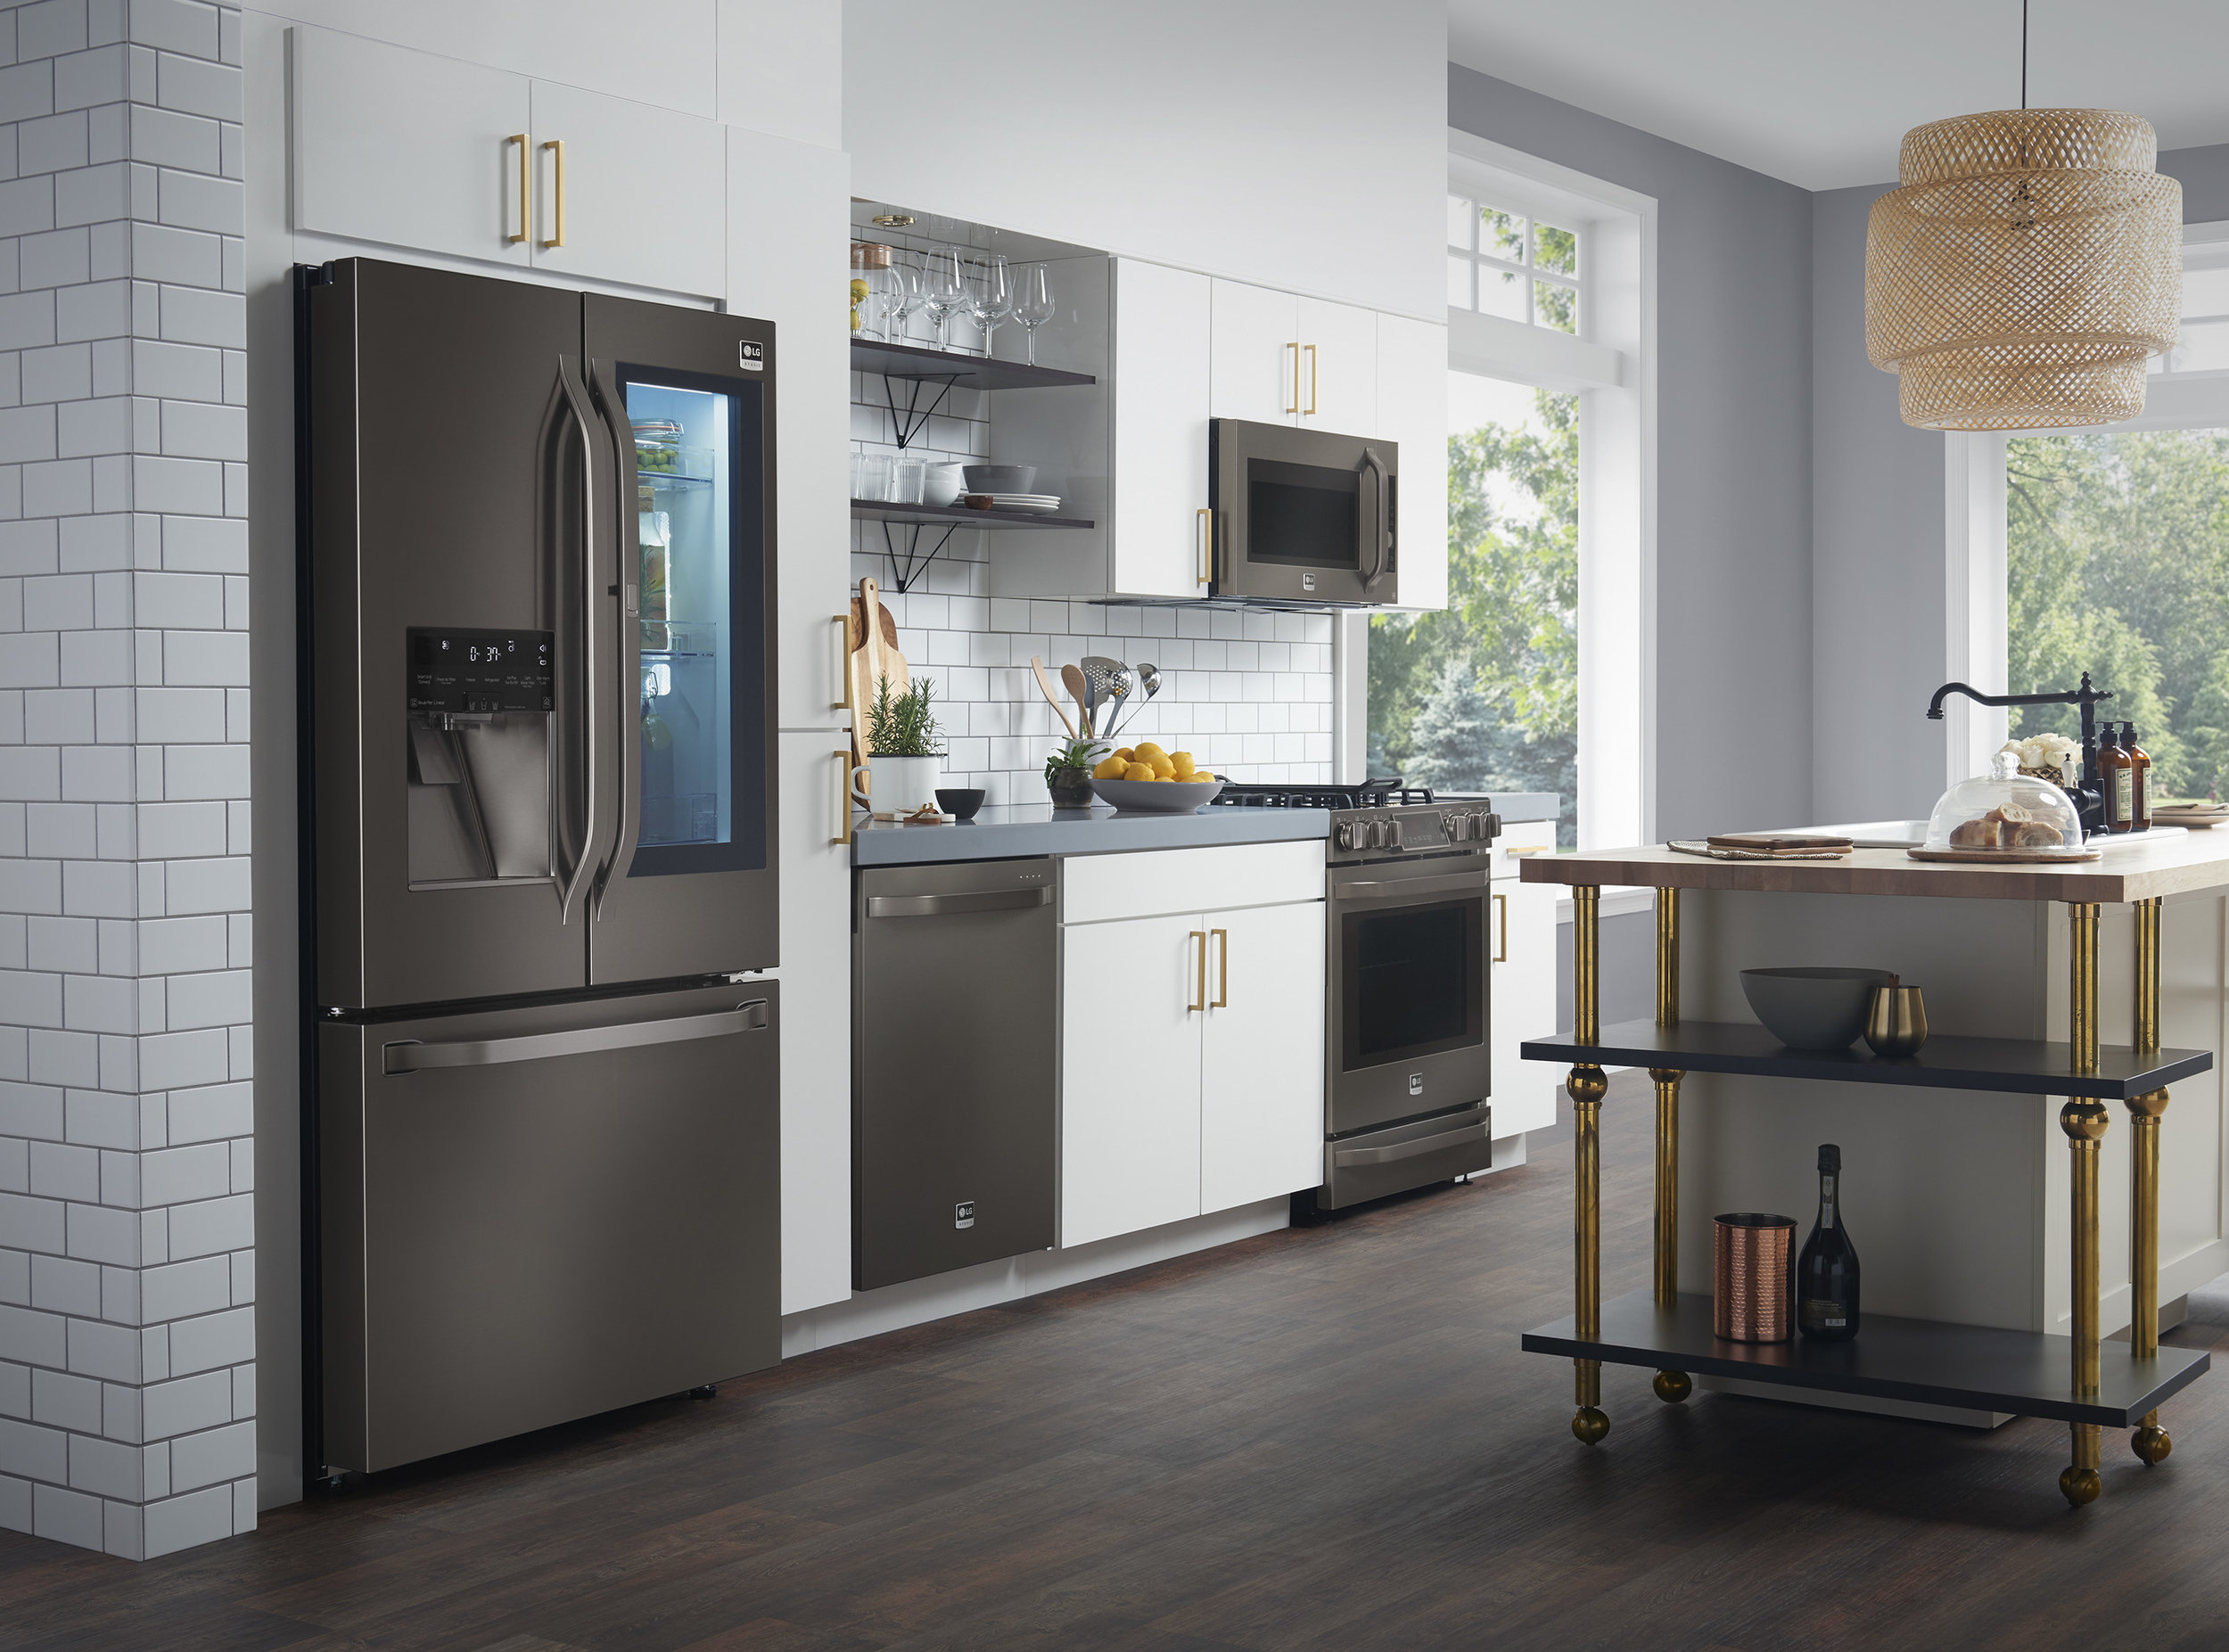 Black Beauty Lg Adds Allure To The Kitchen With Black Stainless Steel Designed With Nate Berkus Www Stylebeatblog Com